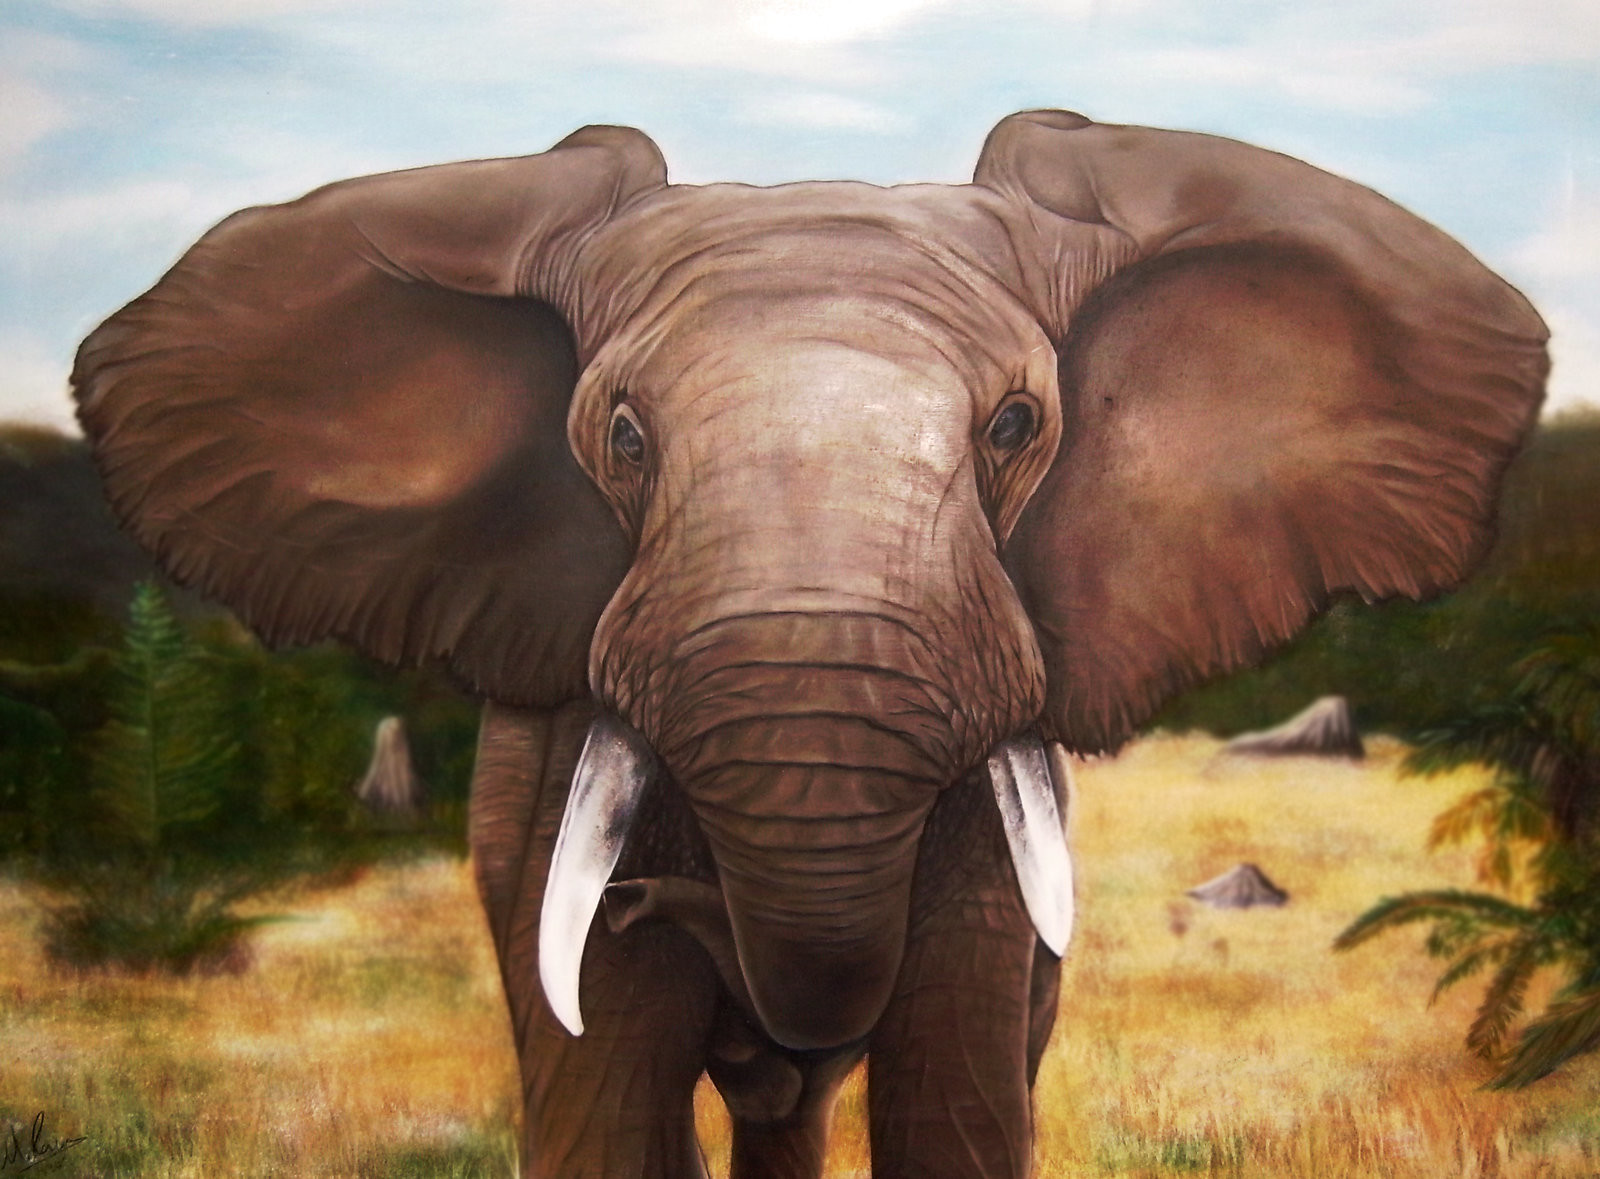 Mark ranson elephant painting by lost artist89